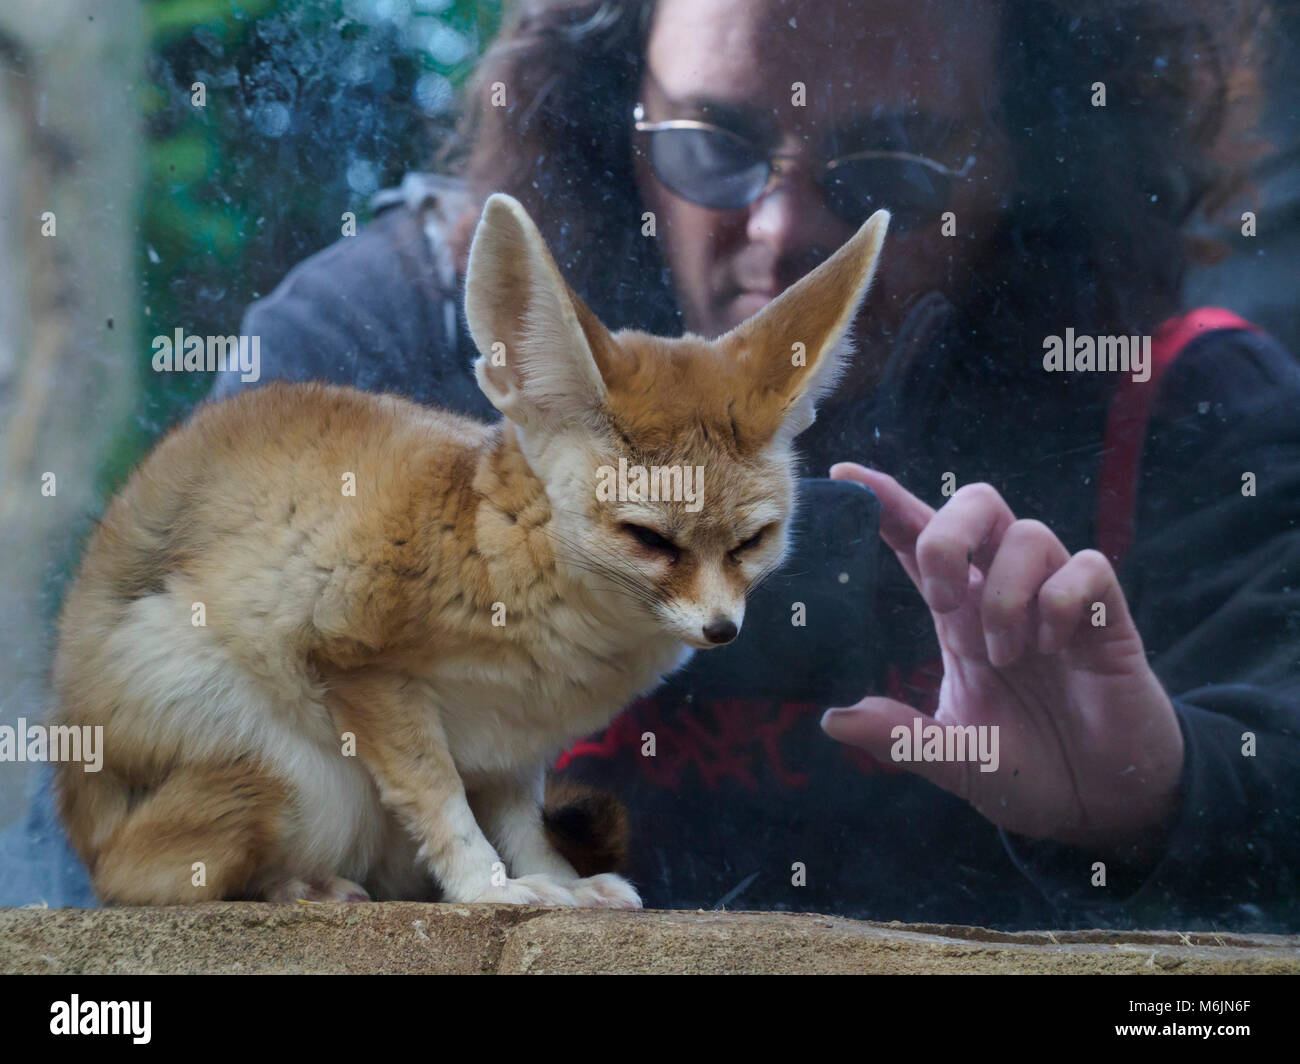 Five Sisters Zoo, near Livingston, Scotland. Visitor photographing a Fennec fox. - Stock Image